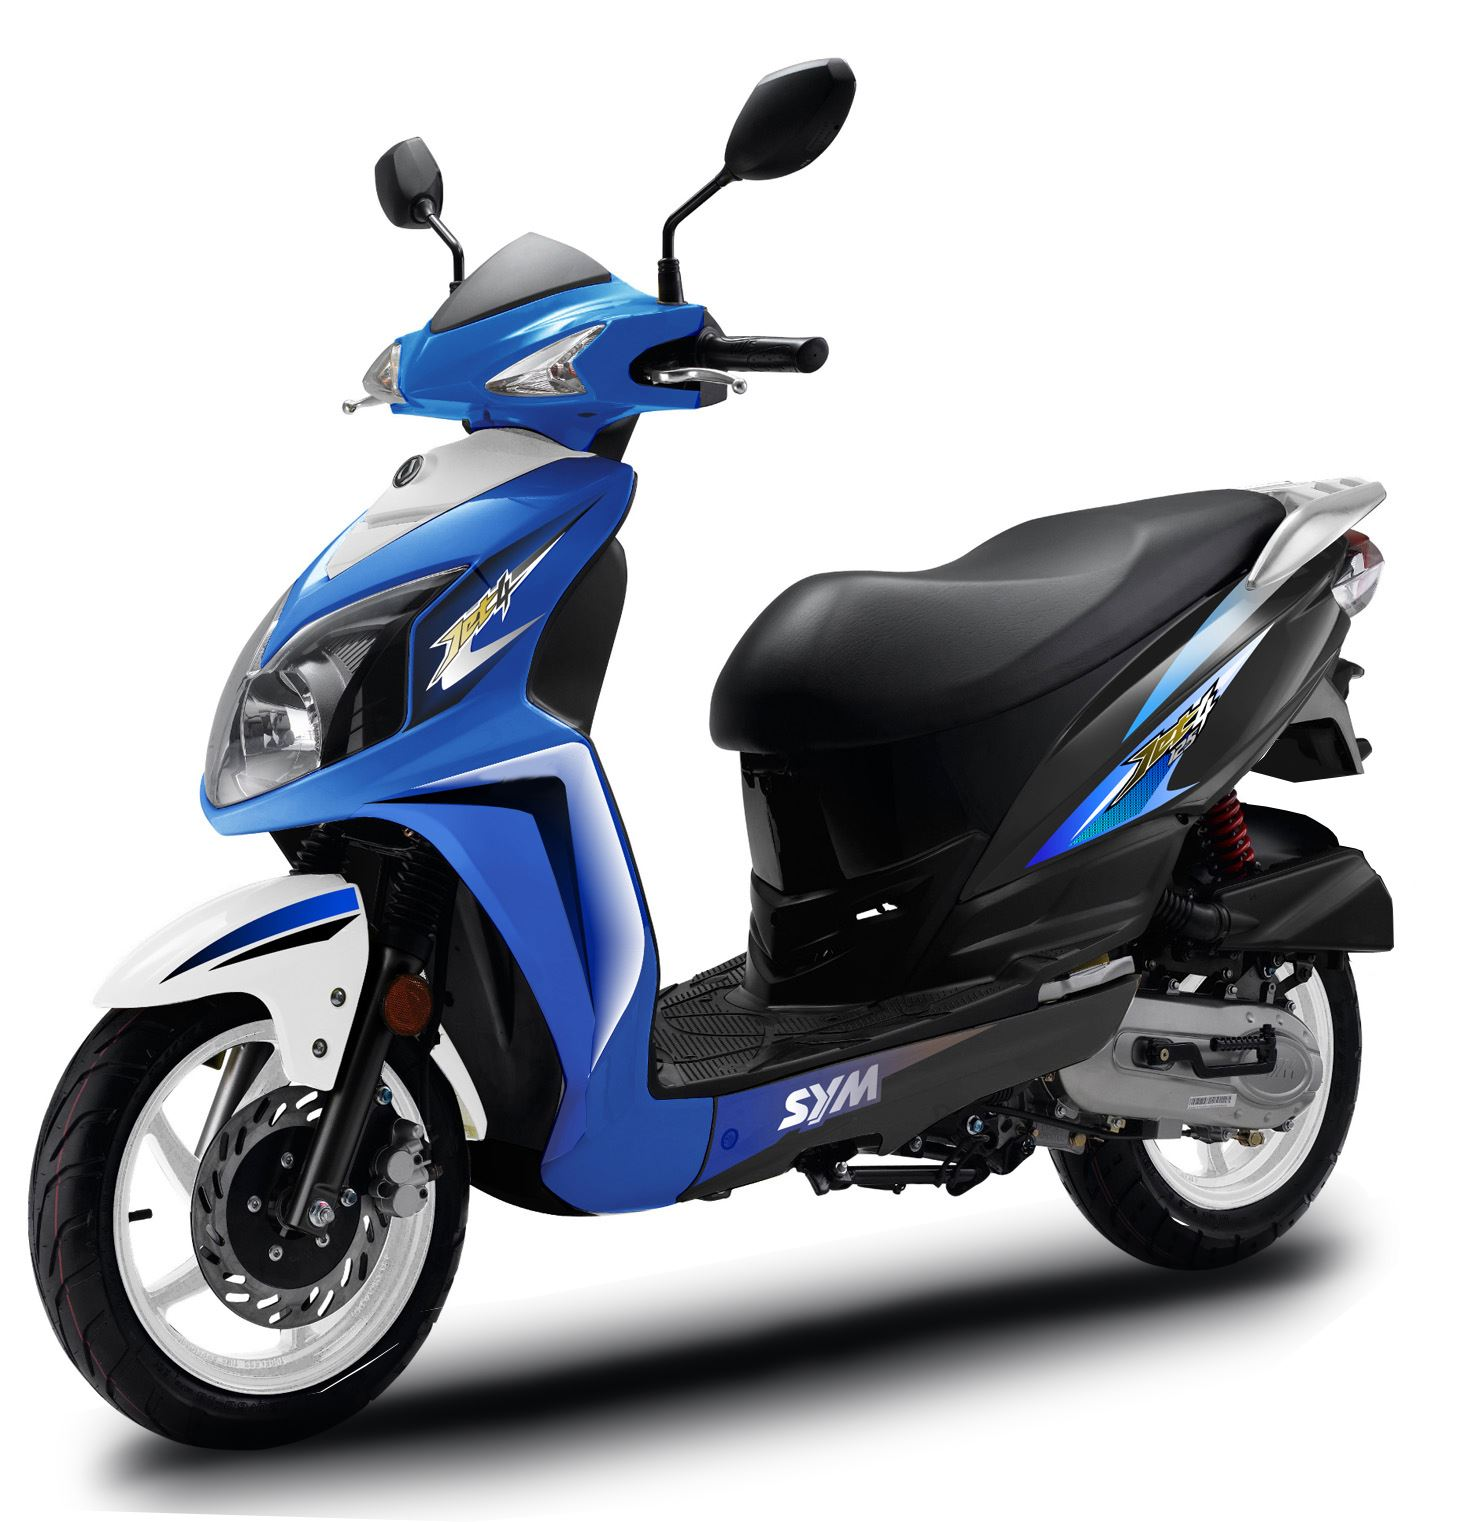 Sym Jet EU-Moped